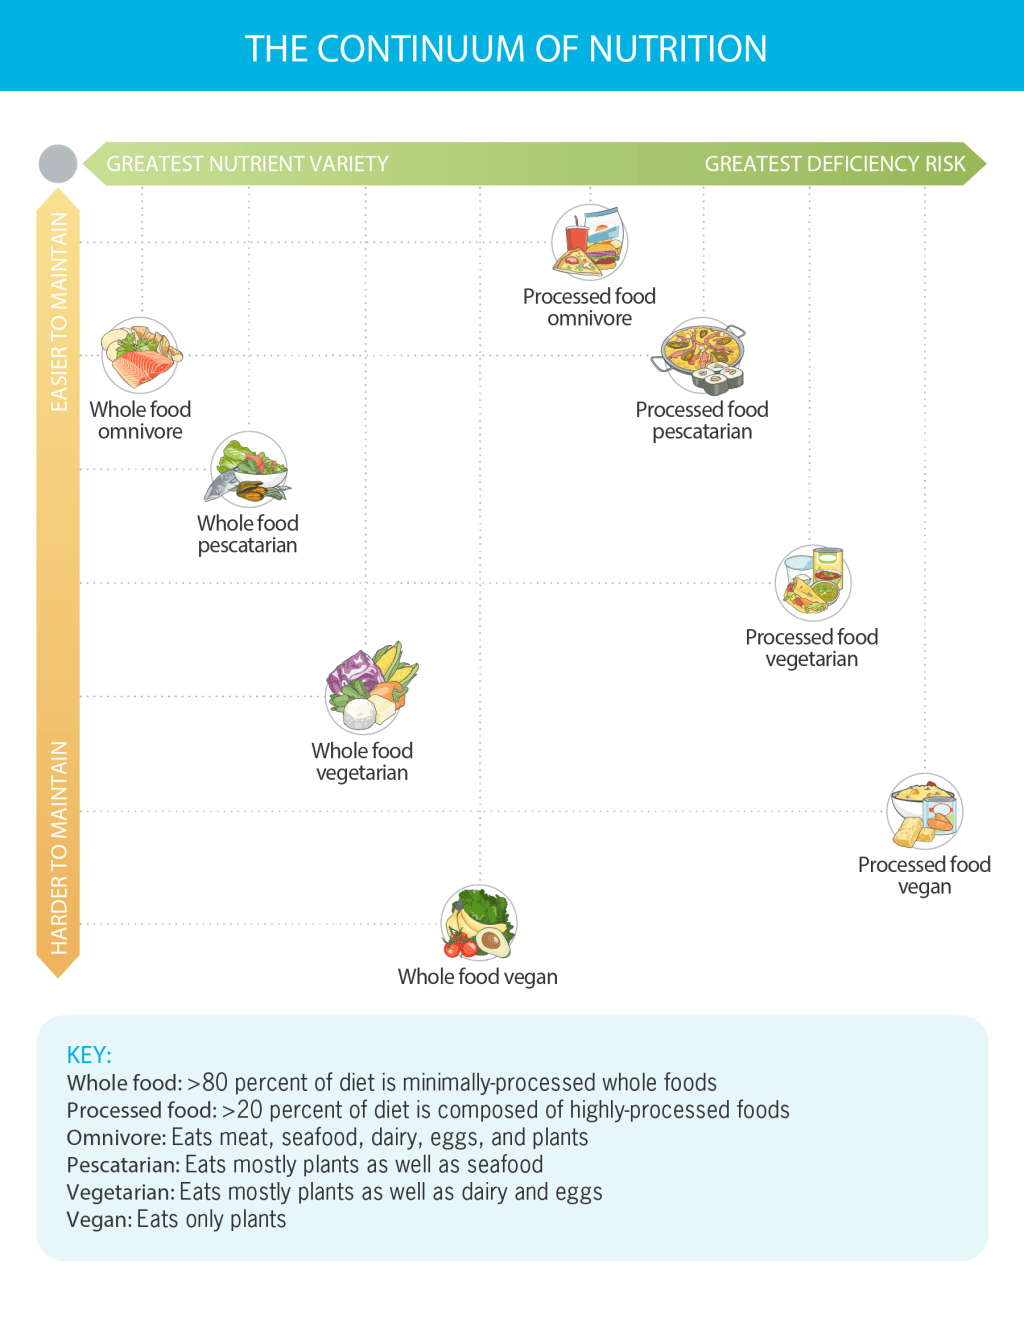 """This chart is titled """"The Continuum of Nutrition."""" At the top of the chart is a horizontal green bar: On the left end it reads, """"Greatest Nutrient Variety""""; on the right end, it reads, """"Greatest Deficiency Risk."""" On the left side of the chart, there's a vertical orange bar. On the bottom end it reads, """"Harder to Maintain""""; on the top end, it reads, """"Easier to Maintain."""" Types of eating styles are plotted based on where they fall on both continuums. """"Whole food omnivore"""" ranks well on """"easier to maintain"""" and """"greatest nutrient variety."""" """"Whole food pescatarian"""" is a little harder than that in both categories, but still scores well overall. """"Whole food vegetarian"""" and """"whole food vegan"""" both move farther away on both continuums, with """"whole food vegan"""" being the hardest to maintain and having the least nutrient variety of the aforementioned approaches. However, all of these approaches provide great nutrient variety than the processed food version of each approach. Those fall in the same order, but are each at progressively greater risk of nutrient deficiency."""